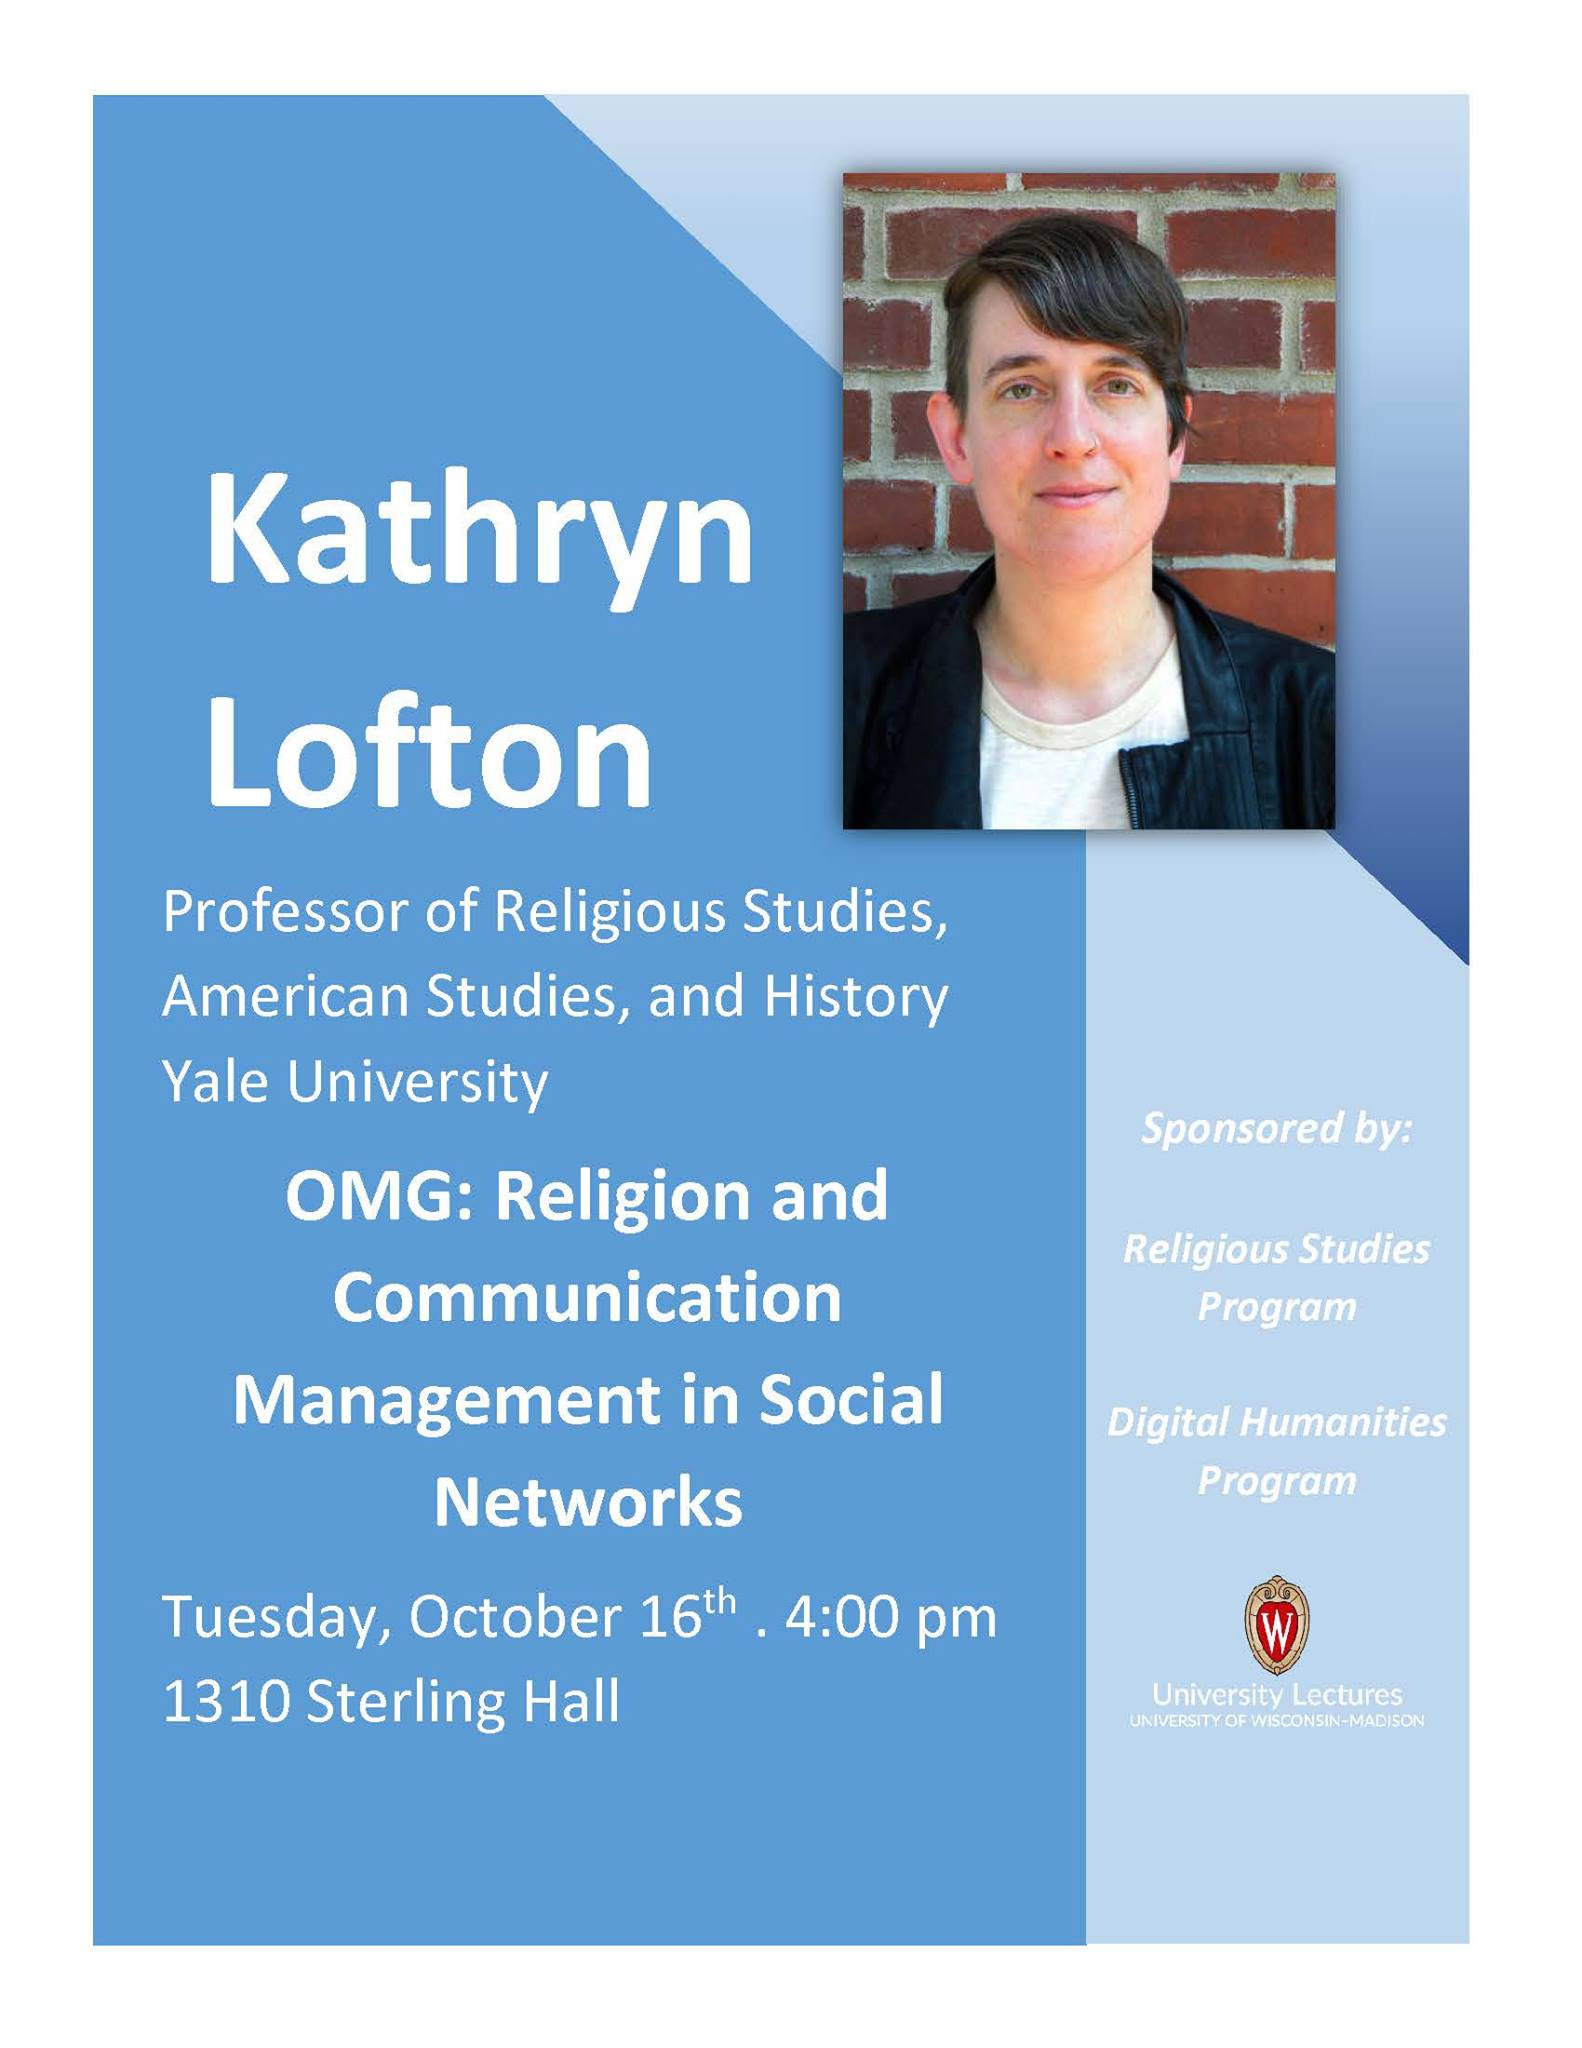 Poster for Kathryn Lofton's talk